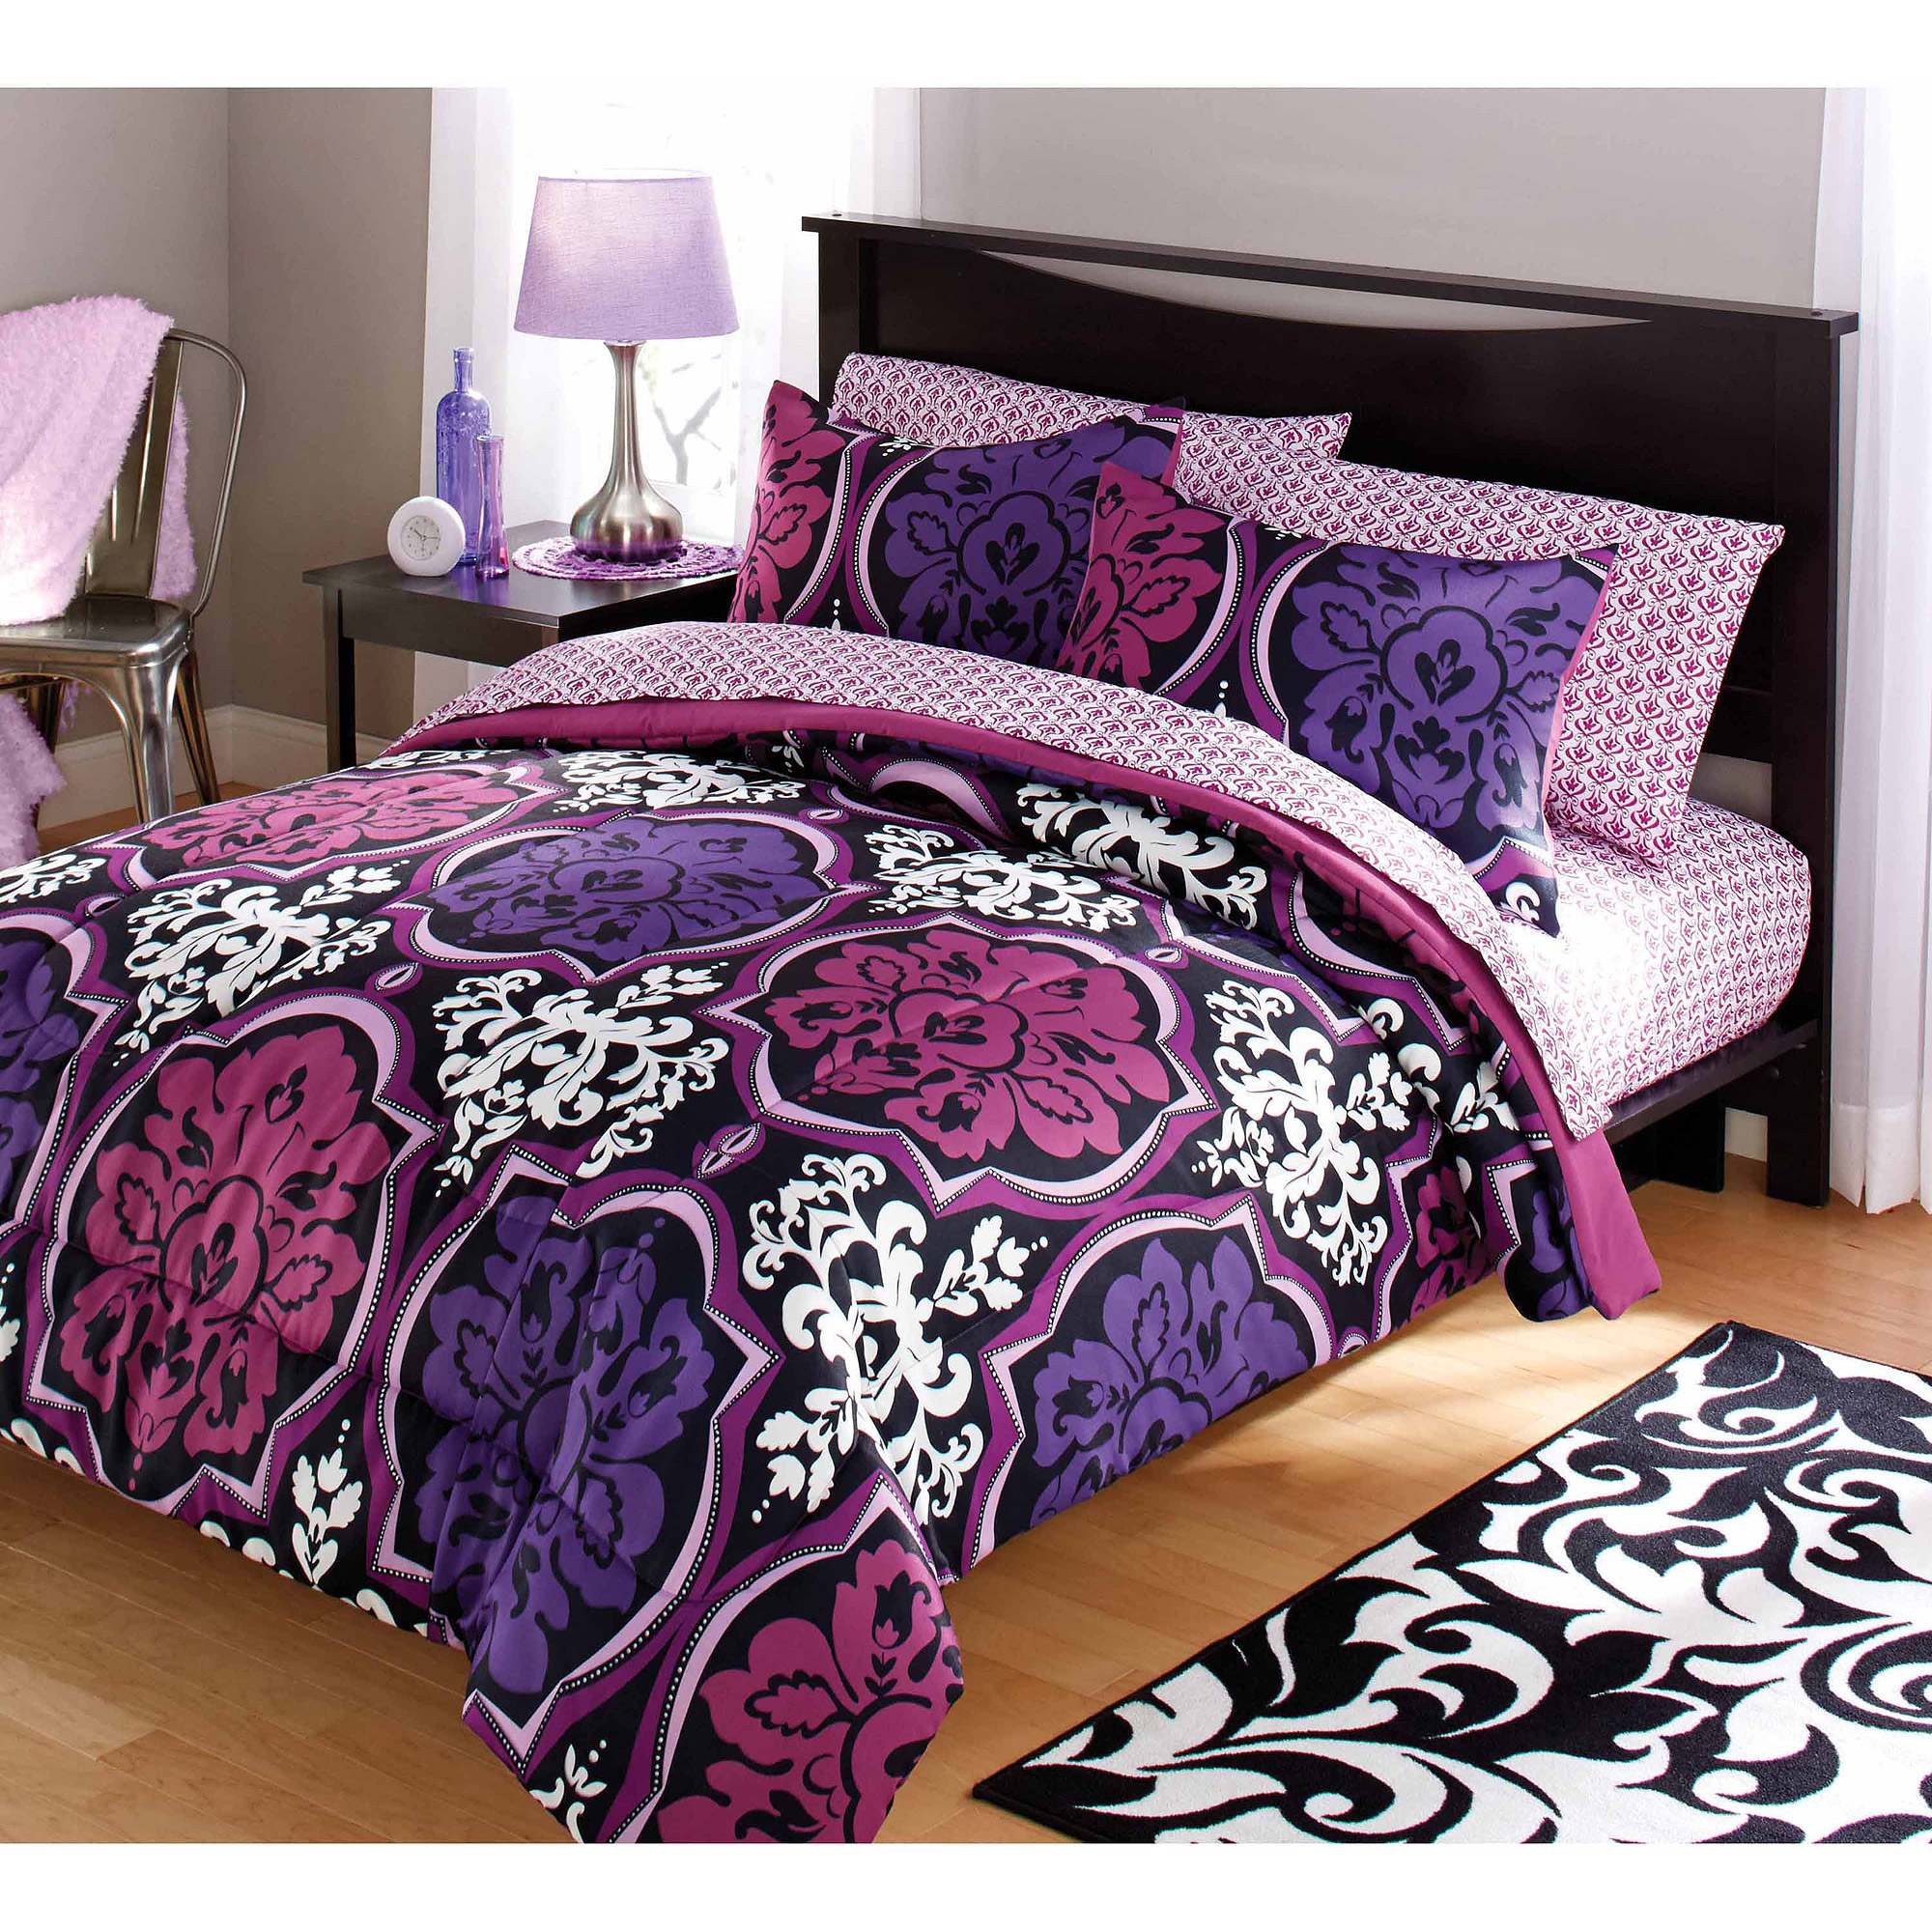 Your Zone Dotted Damask Bedding Comforter Set, Purple   Walmart.com